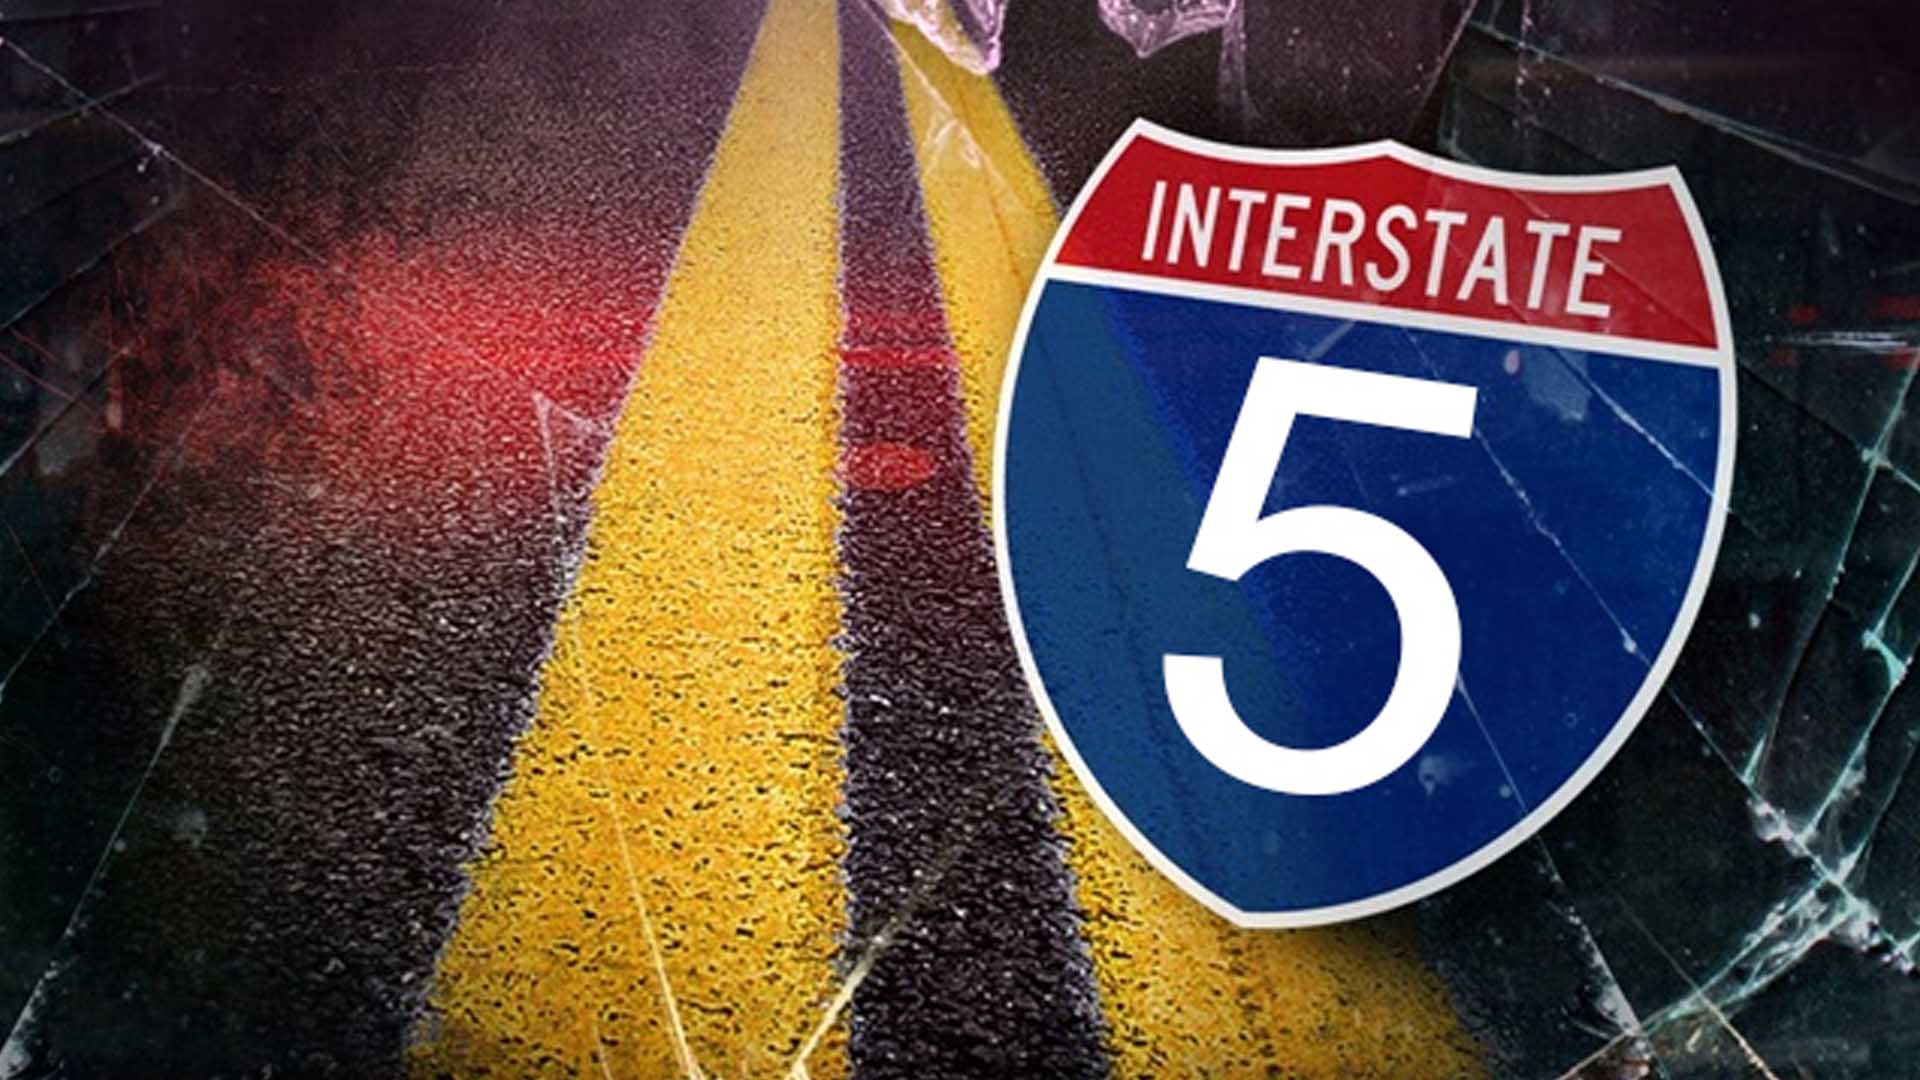 19-year-old Grants Pass resident named in fatal I-5 crash